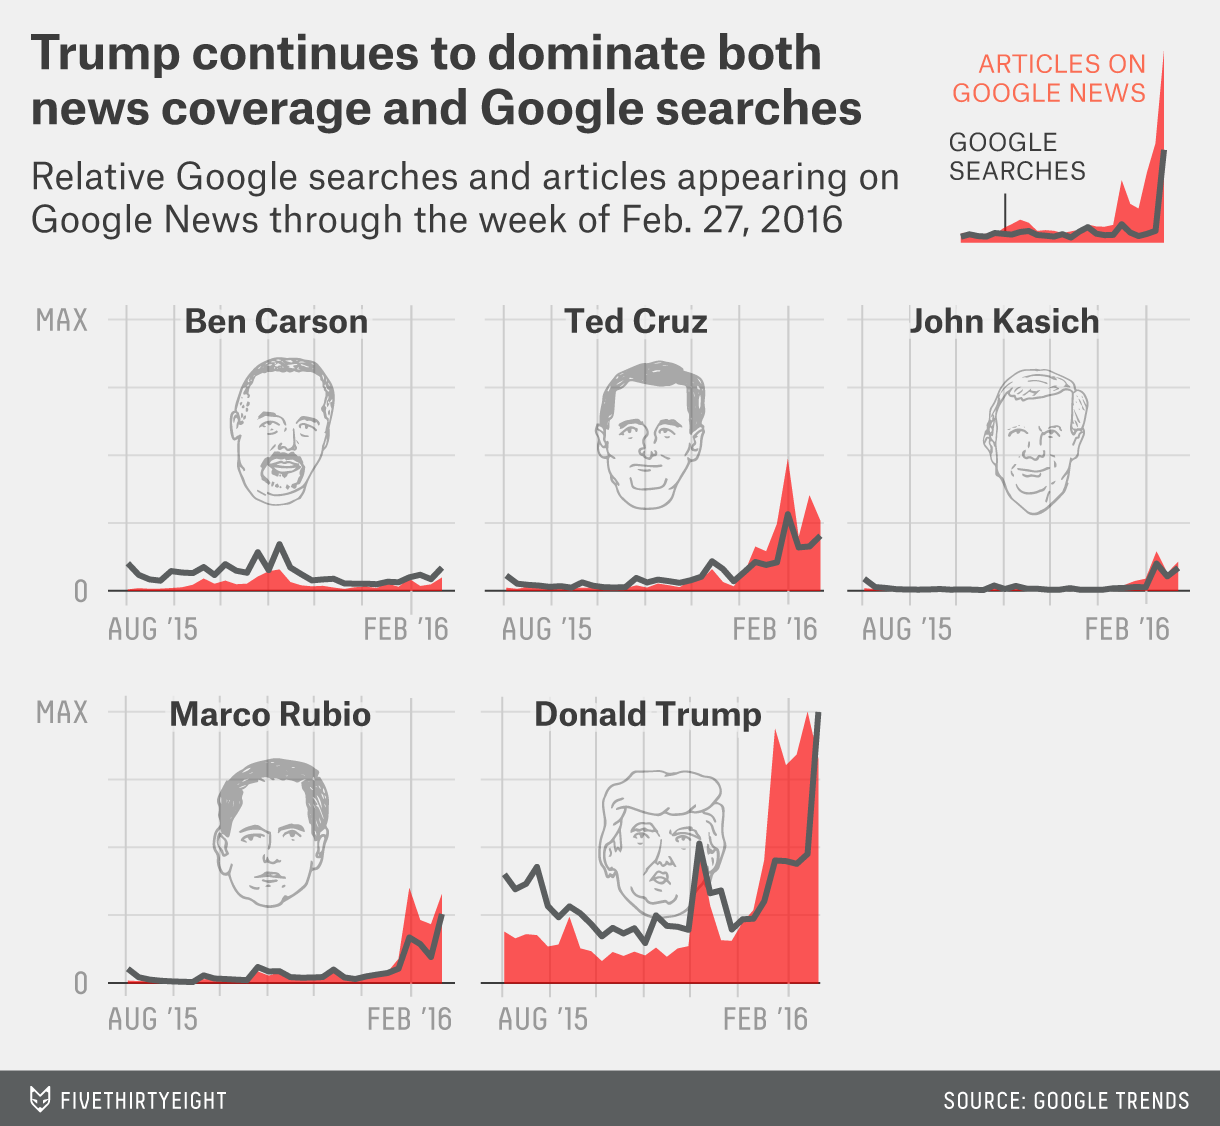 Trump dominates both news and search